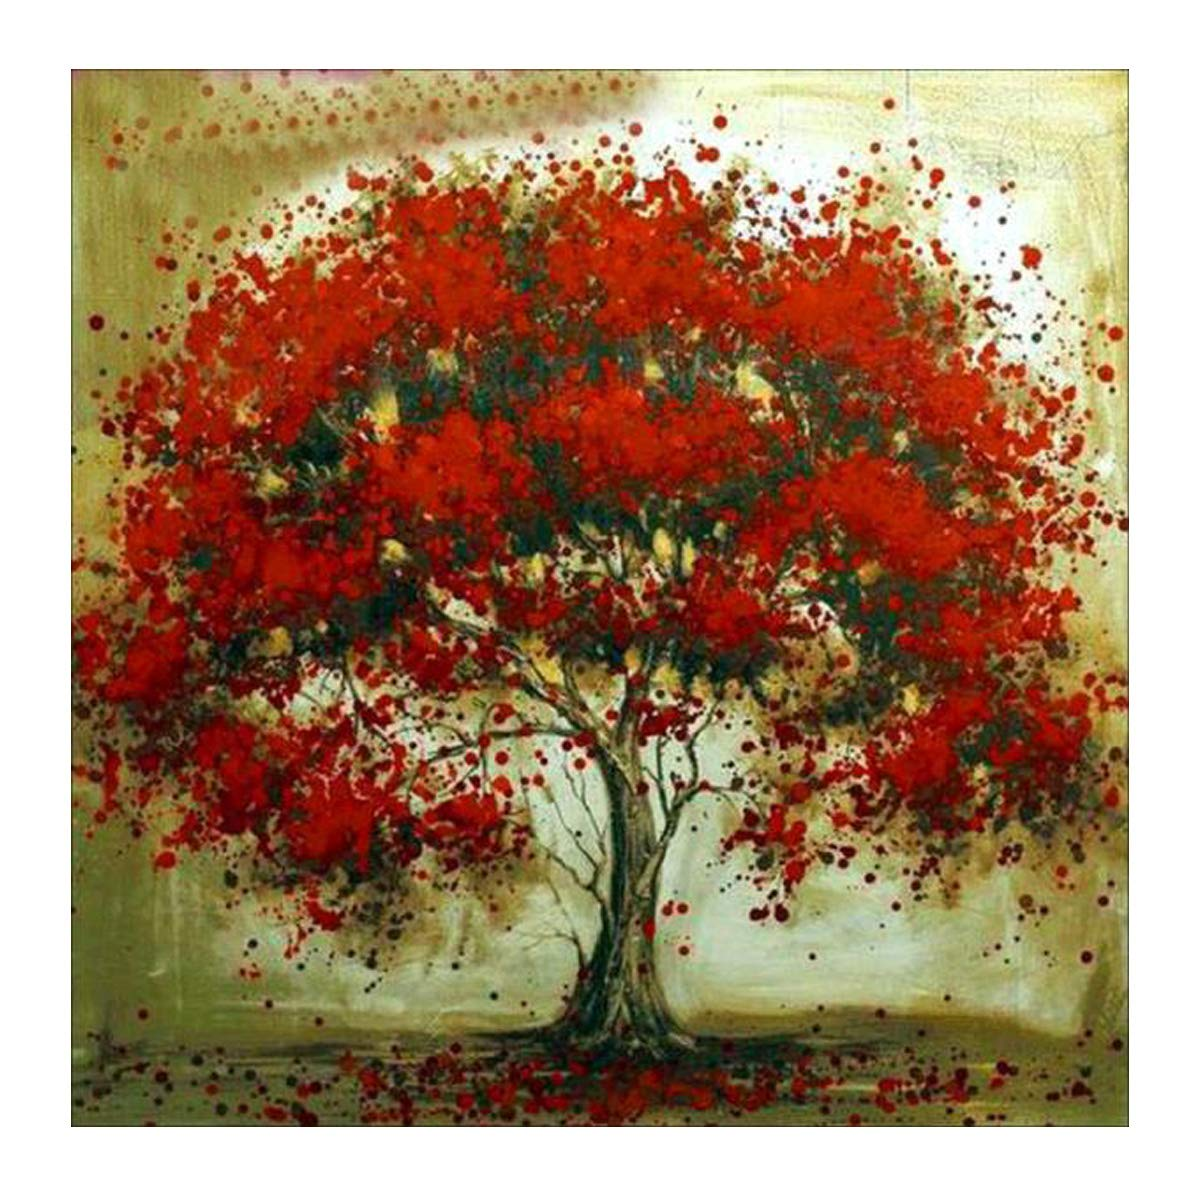 MXJSUA 5D Diamond Painting Full Round Drill Kits for Adults Pasted Embroidery Cross Stitch Arts Craft for Home Wall Decor Falling Flower Tree 12x12in